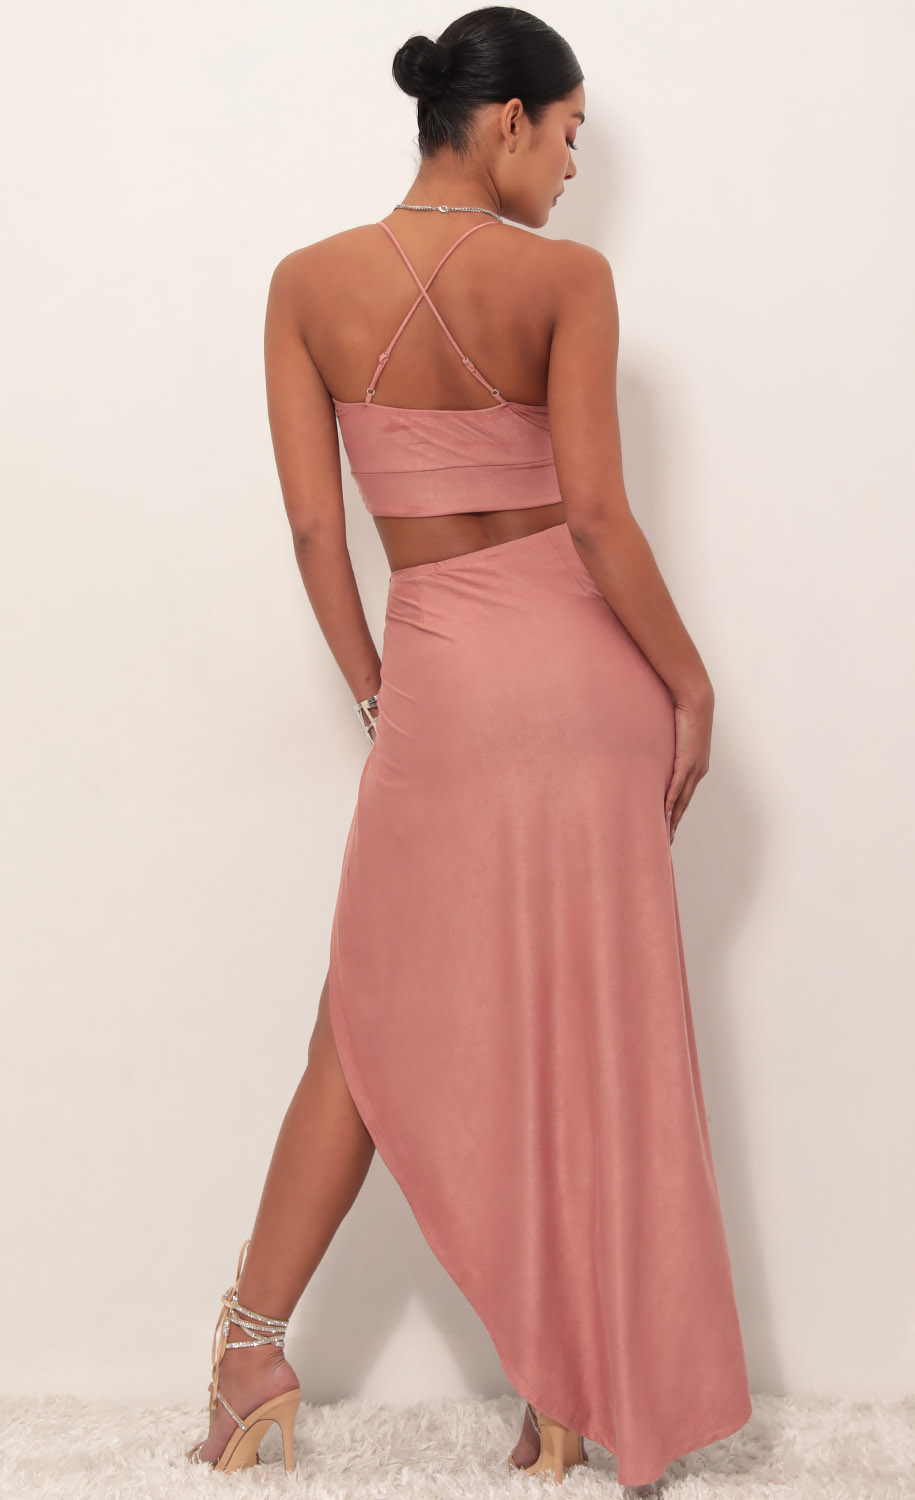 Sicily Suede Luxe Maxi Set in Mauve